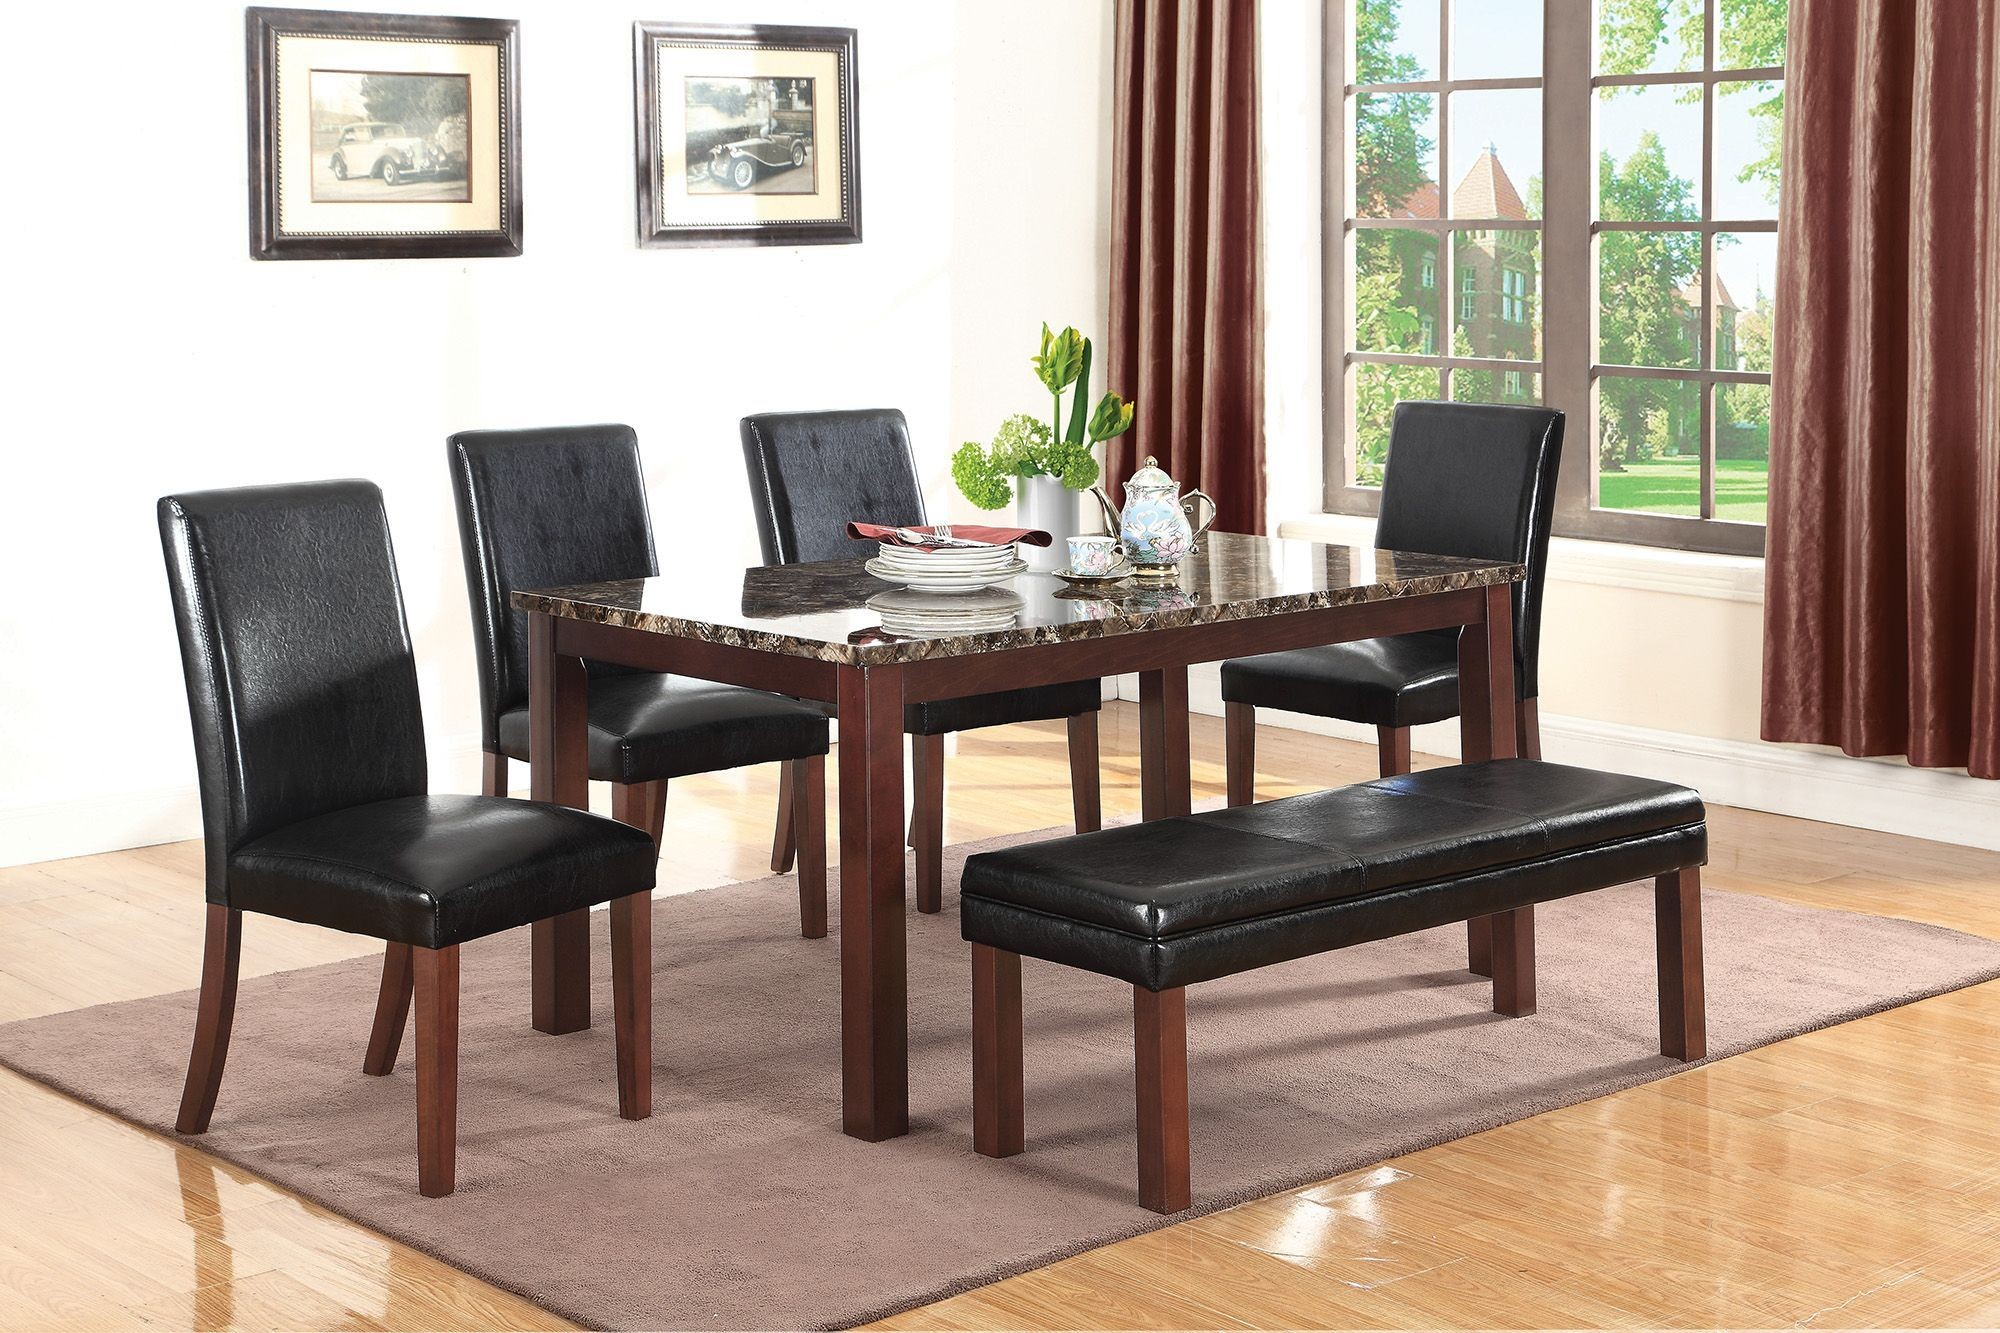 Otero dark brown dining room set from coaster coleman for Brown dining room set